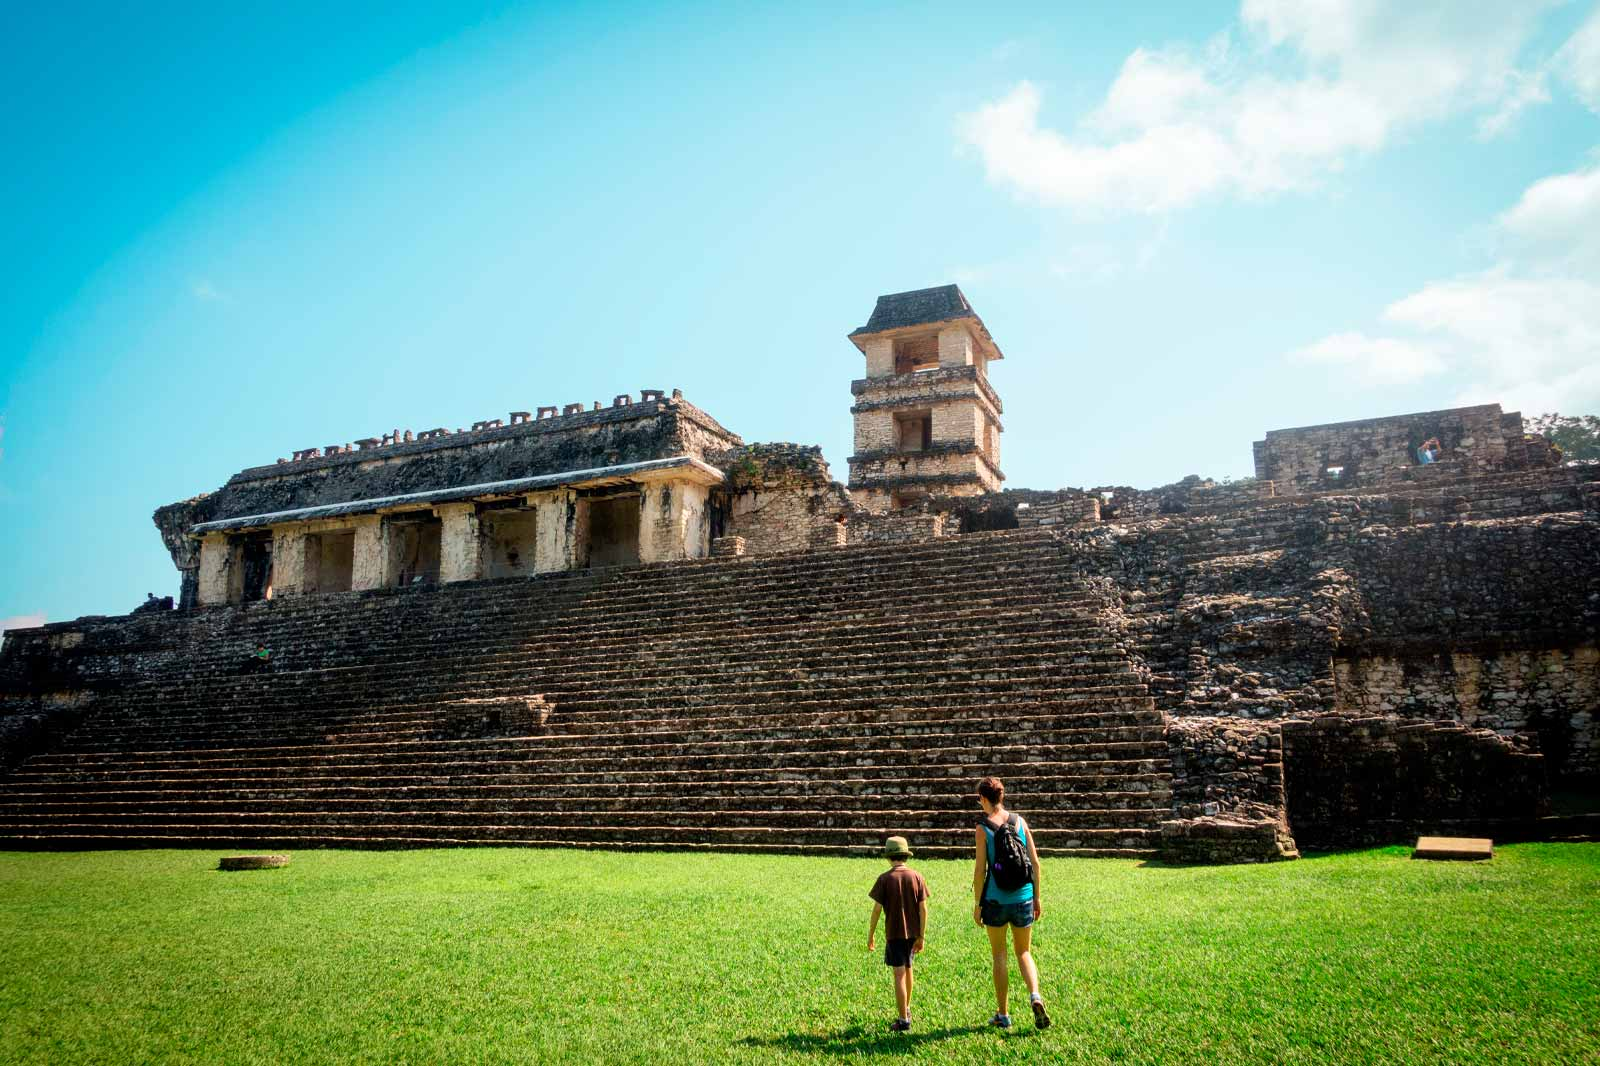 mexicofinder-travel-mexico-chiapa-palenque-living-history